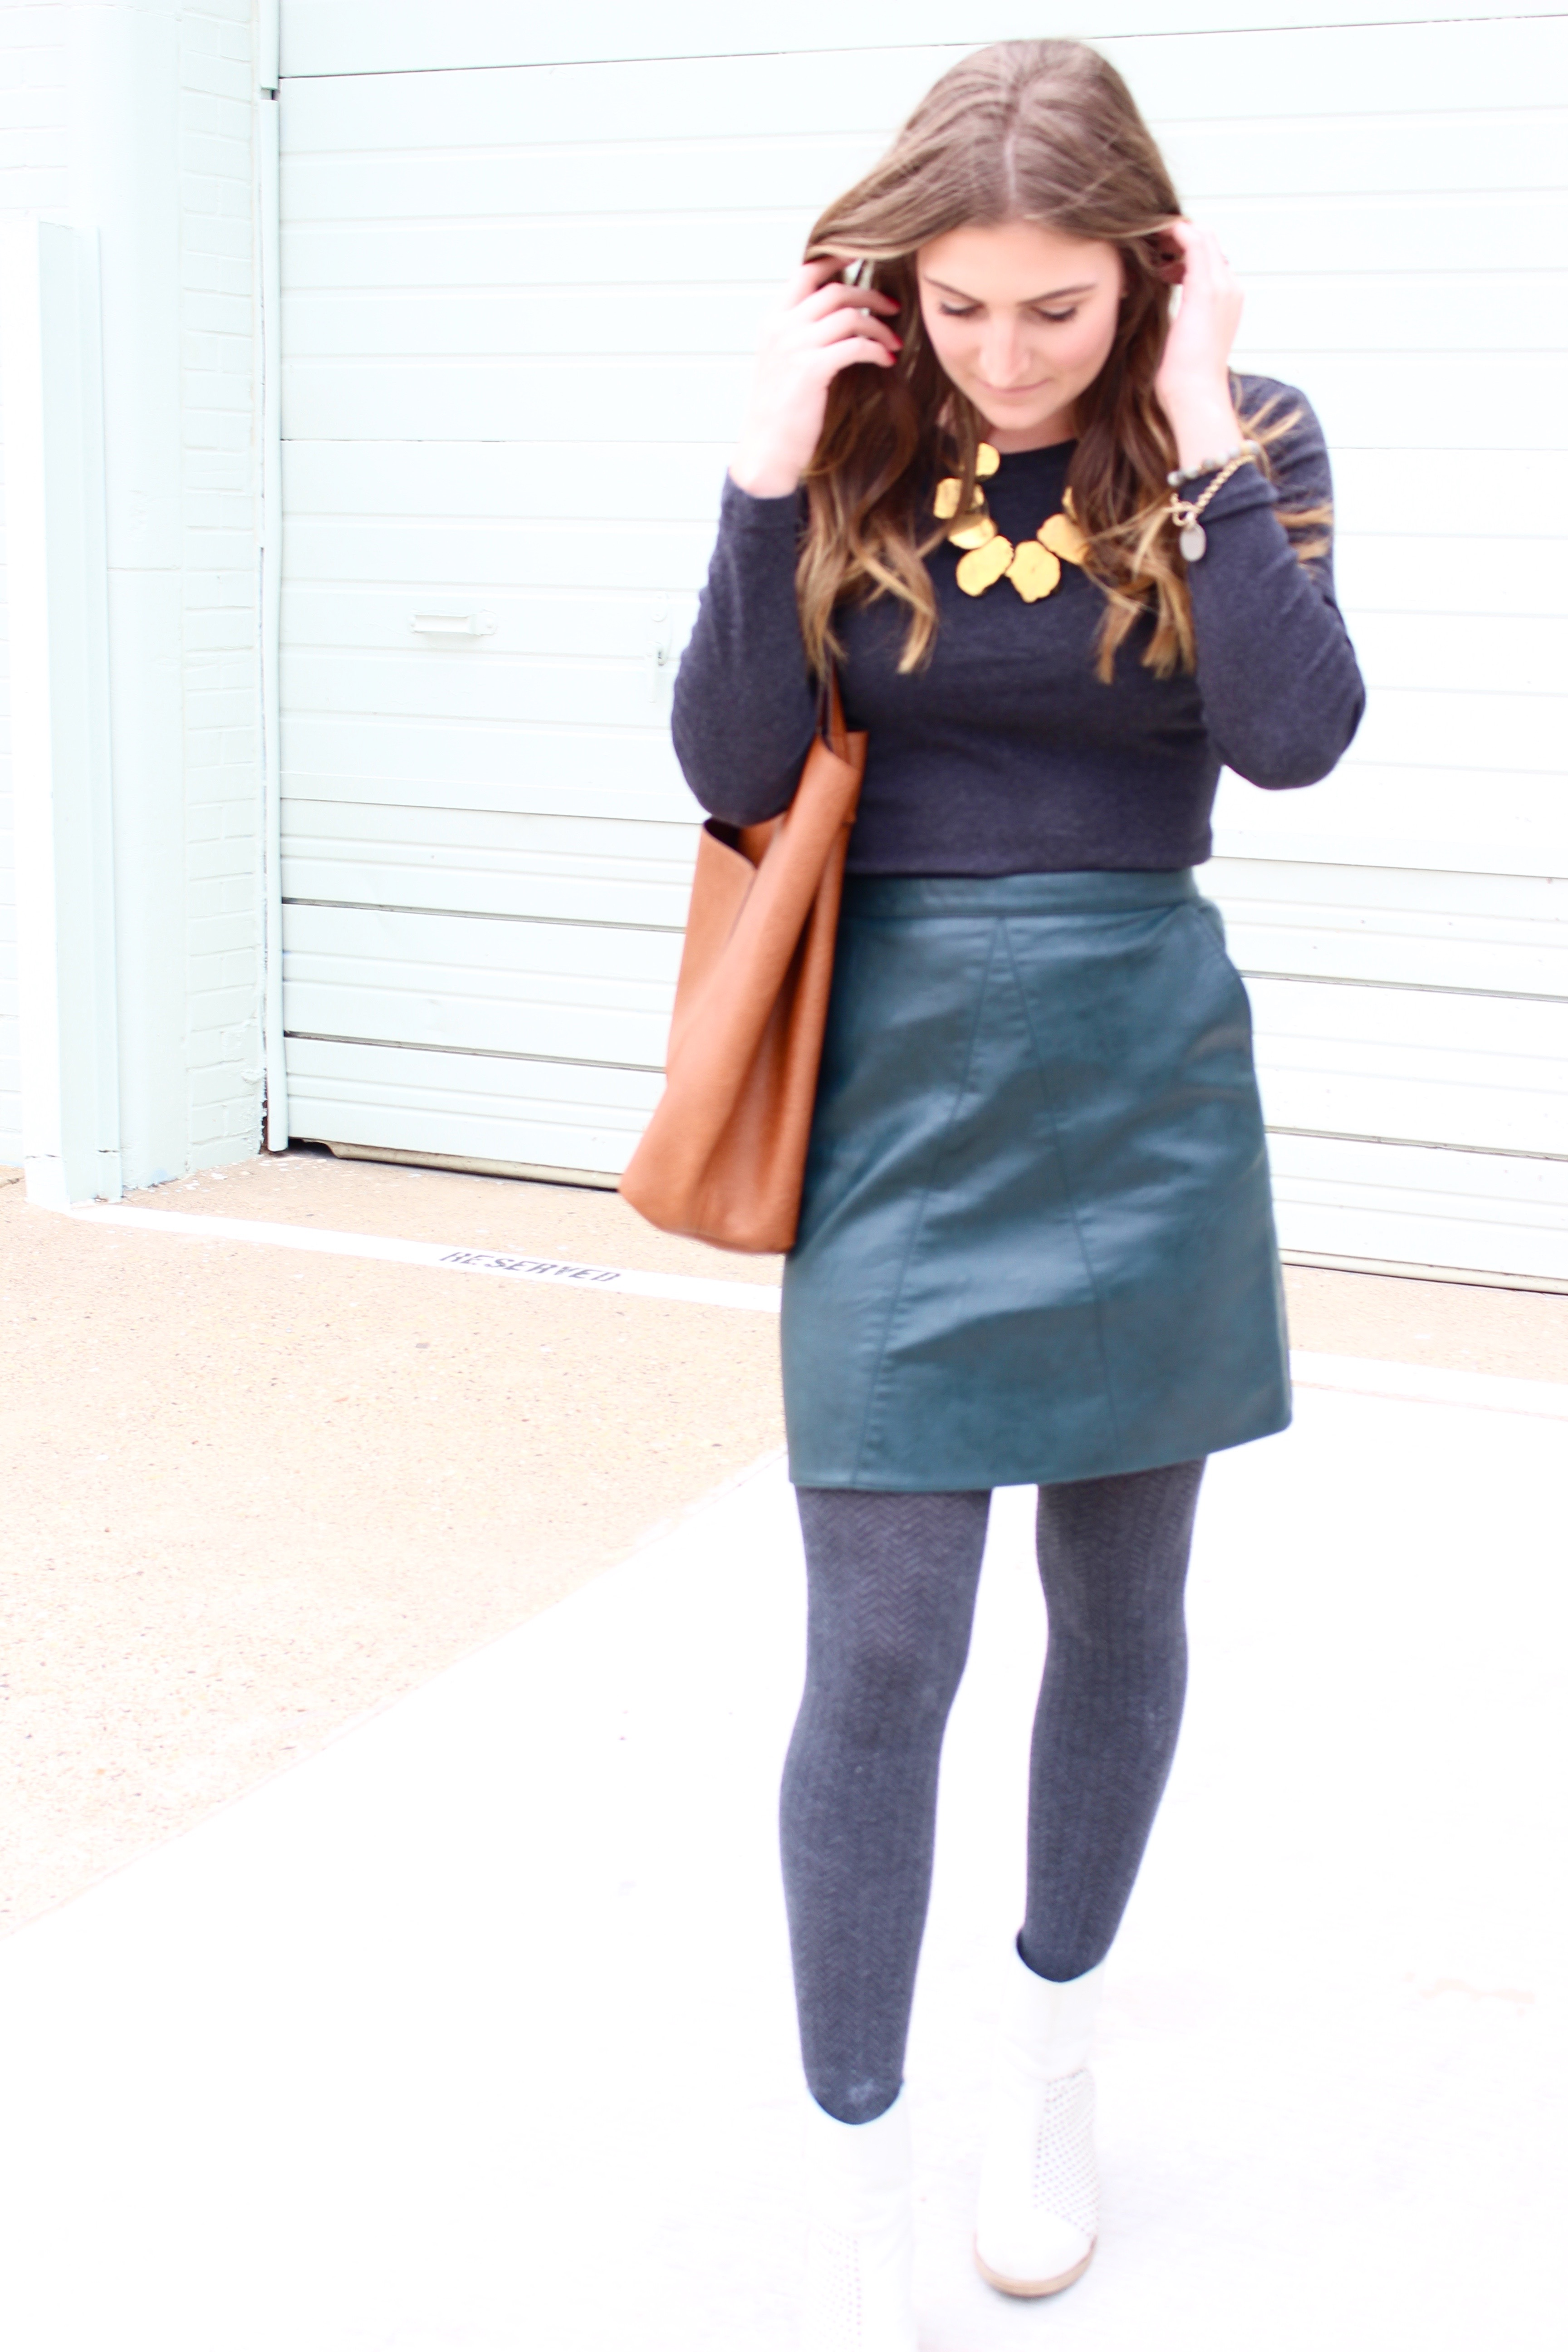 leather green skirt from zara - Green Leather Skirt by popular Texas fashion blogger Audrey Madison Stowe